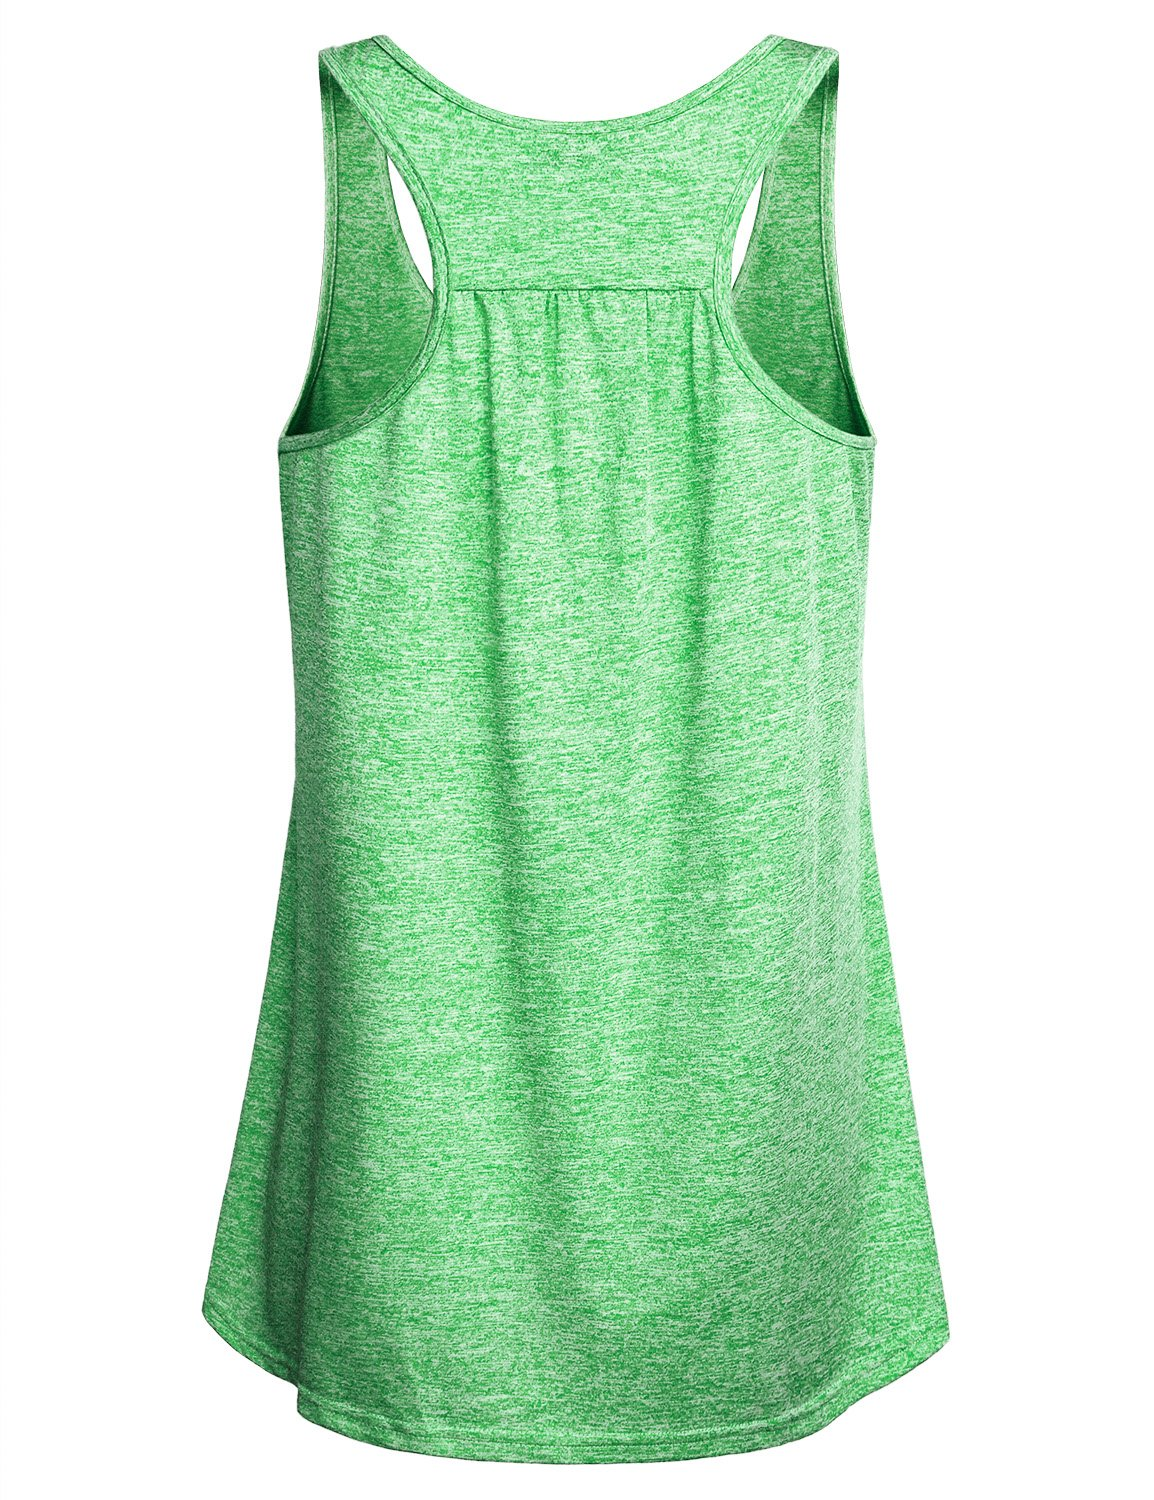 Miusey Gym Clothes for Women Ladies Sleeveless Exercise Athletic Swing Activity Crew Neck Basic Comfortable Lightweight Workout Racerback Tank Tops Green M by Miusey (Image #2)